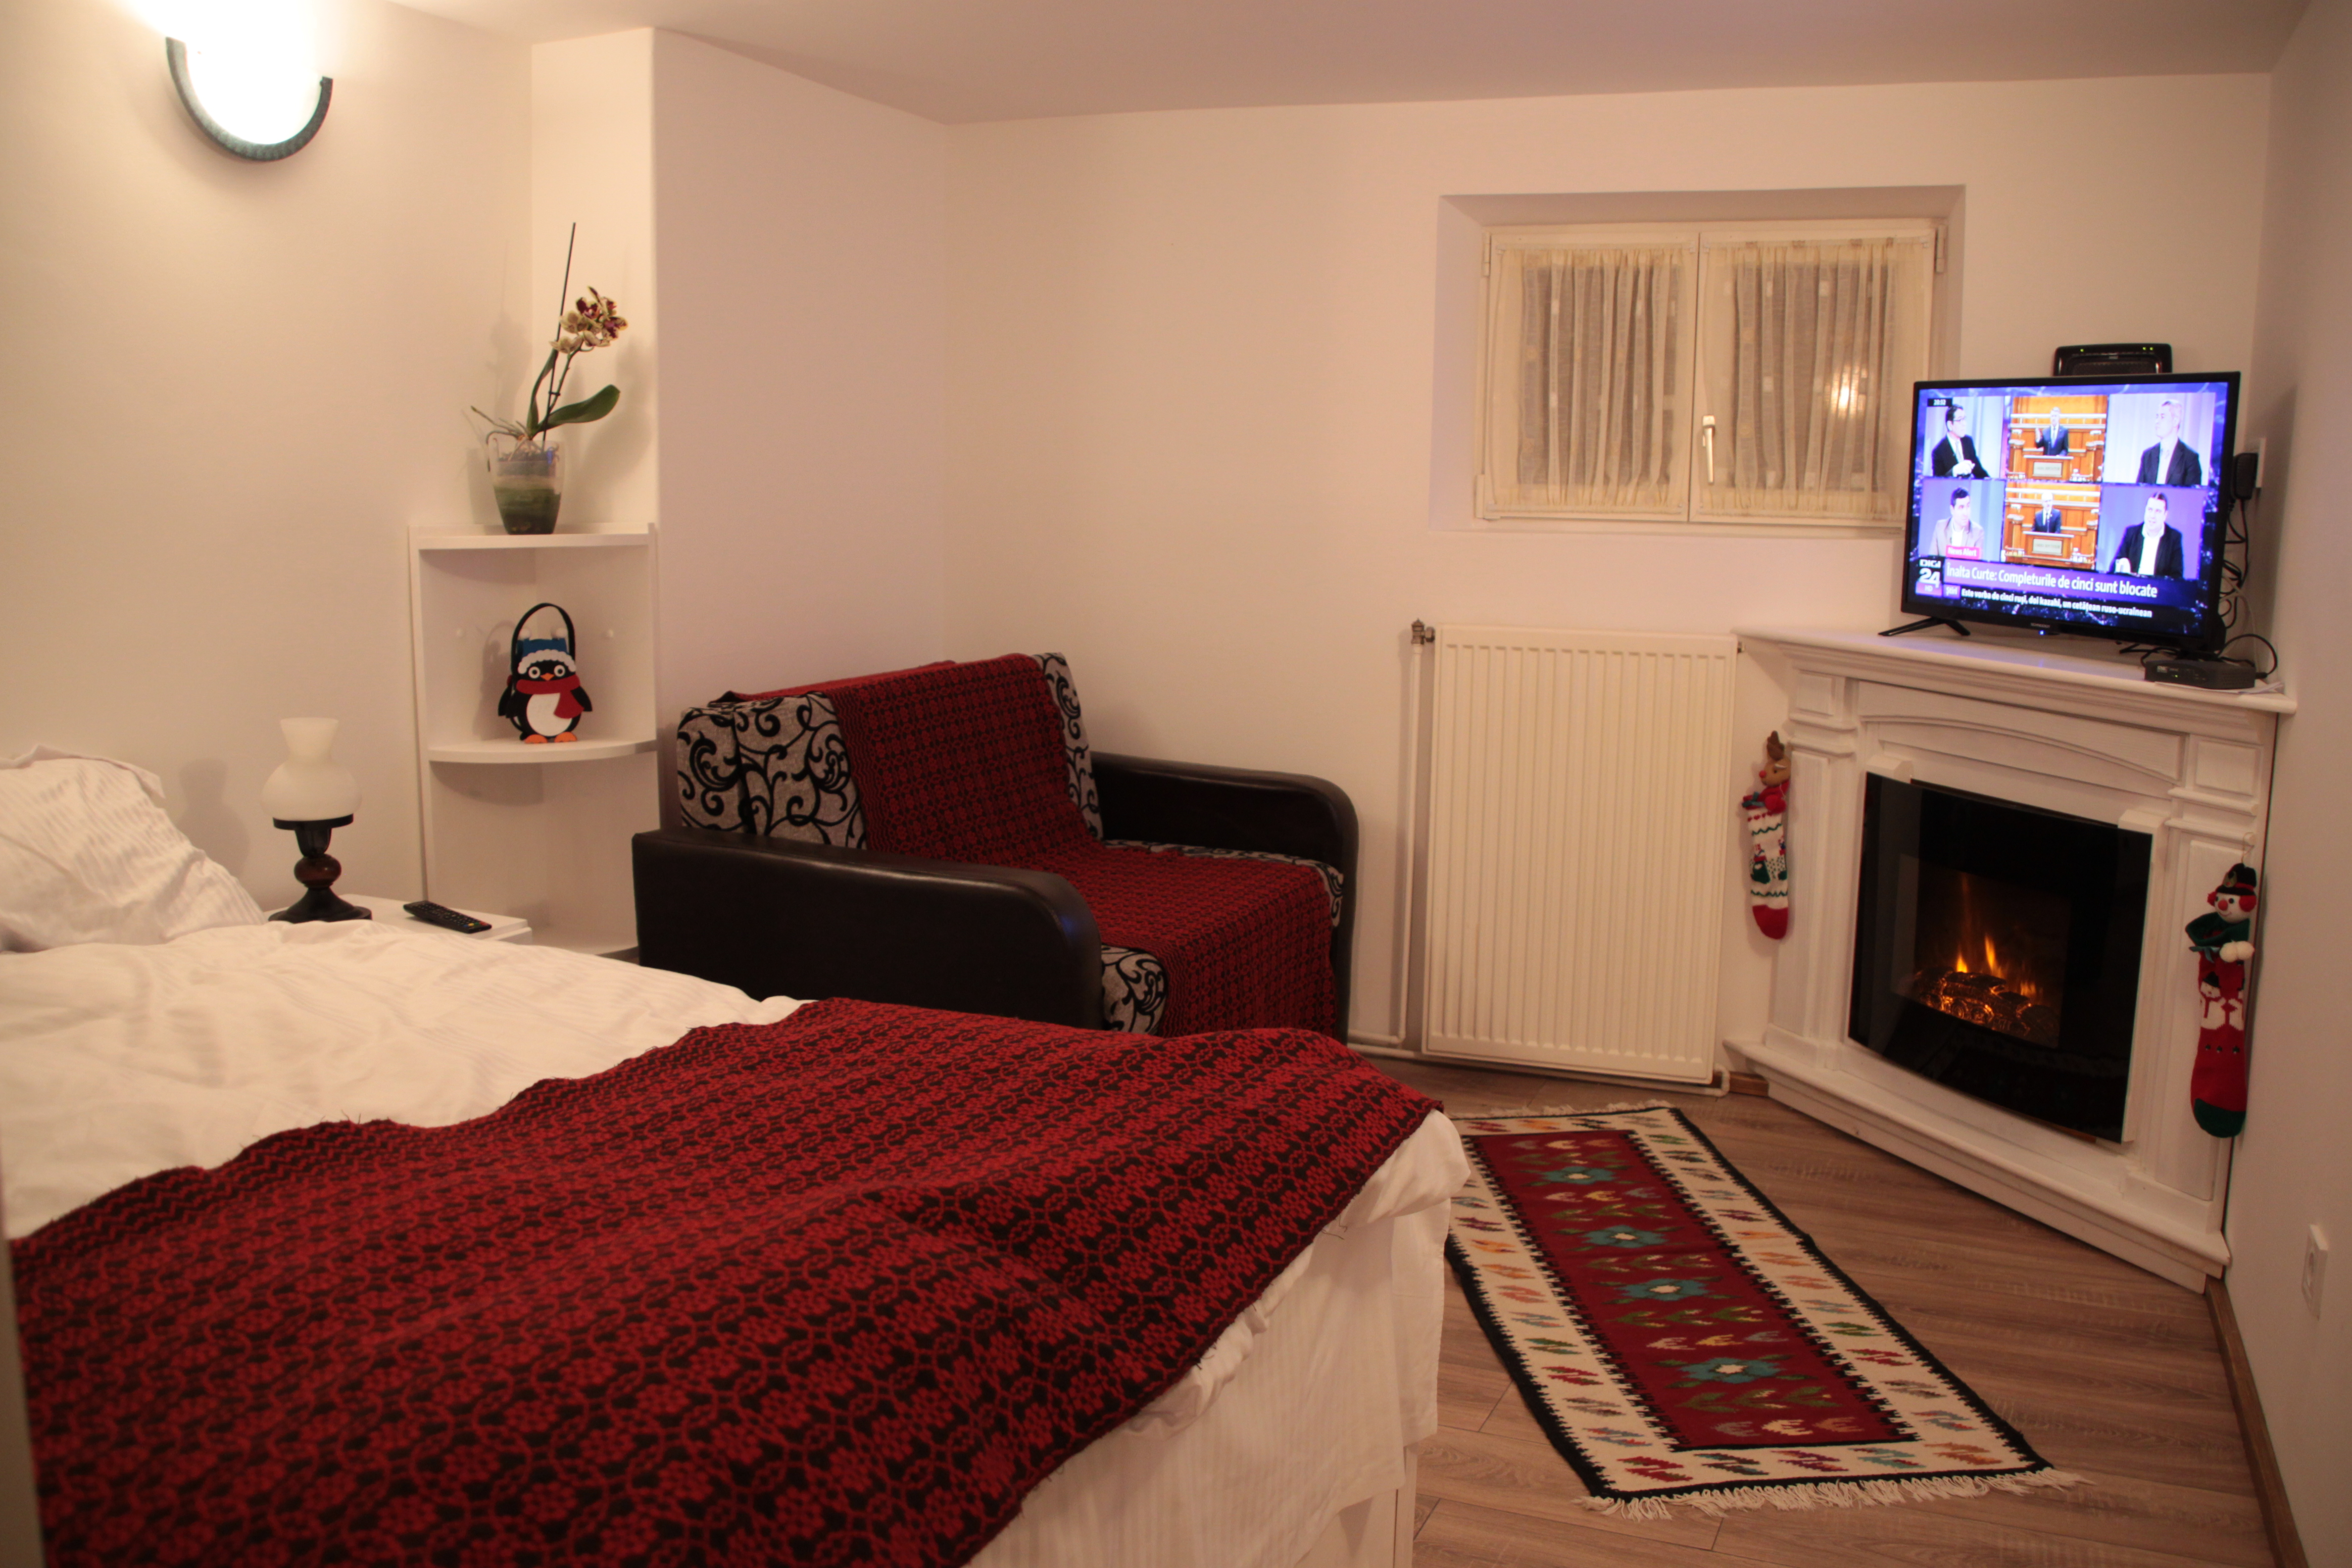 Accommodation in the old town of Brasov